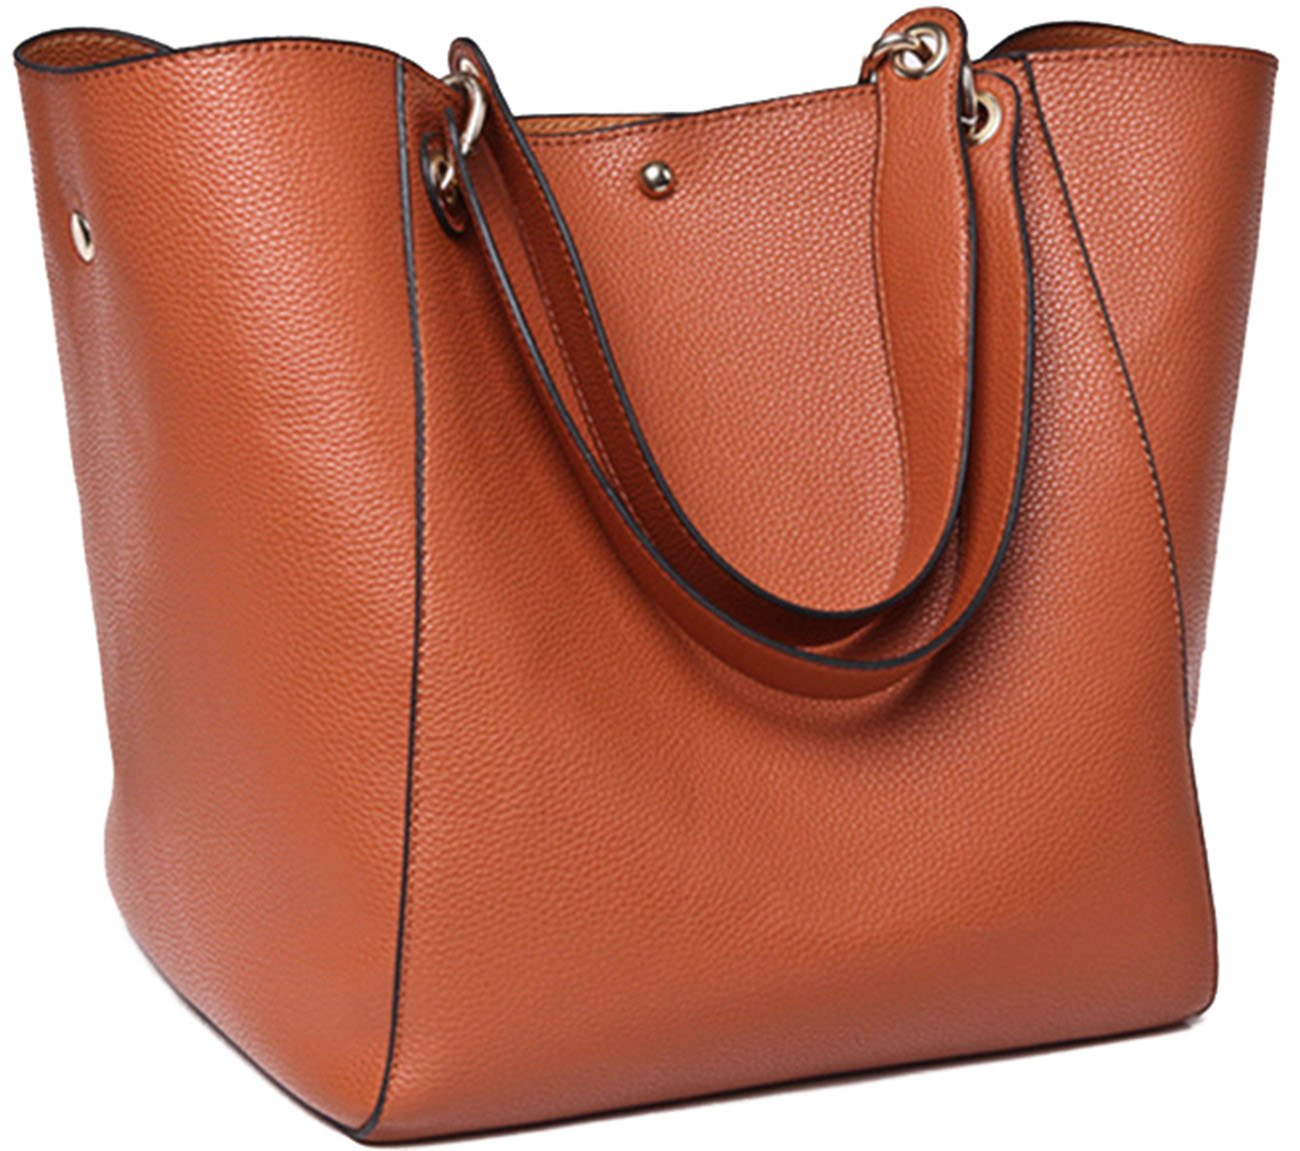 SQLP Fashion Women's Leather Handbags ladies Waterproof Shoulder Bag Tote Bags shoutibao100-heise